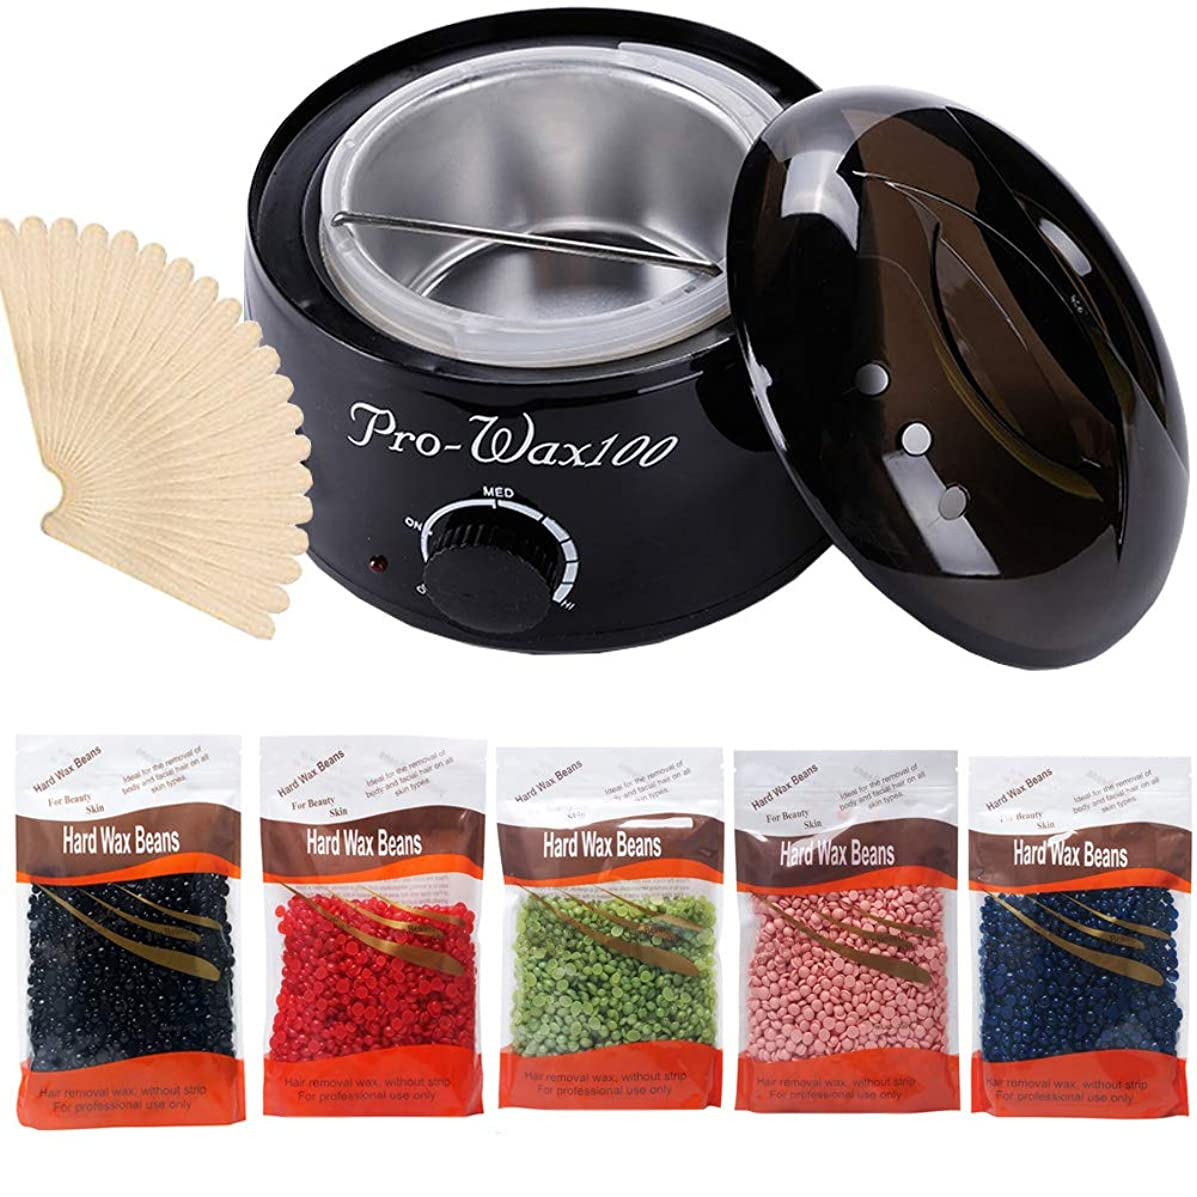 Hot Wax Warmer Cleaner Electric Waxing Kit for Body Foot Hand Skin Hair Removal Melting Pot Wax Machine with Hard Wax Beans Wax Applicator Sticks(Black)